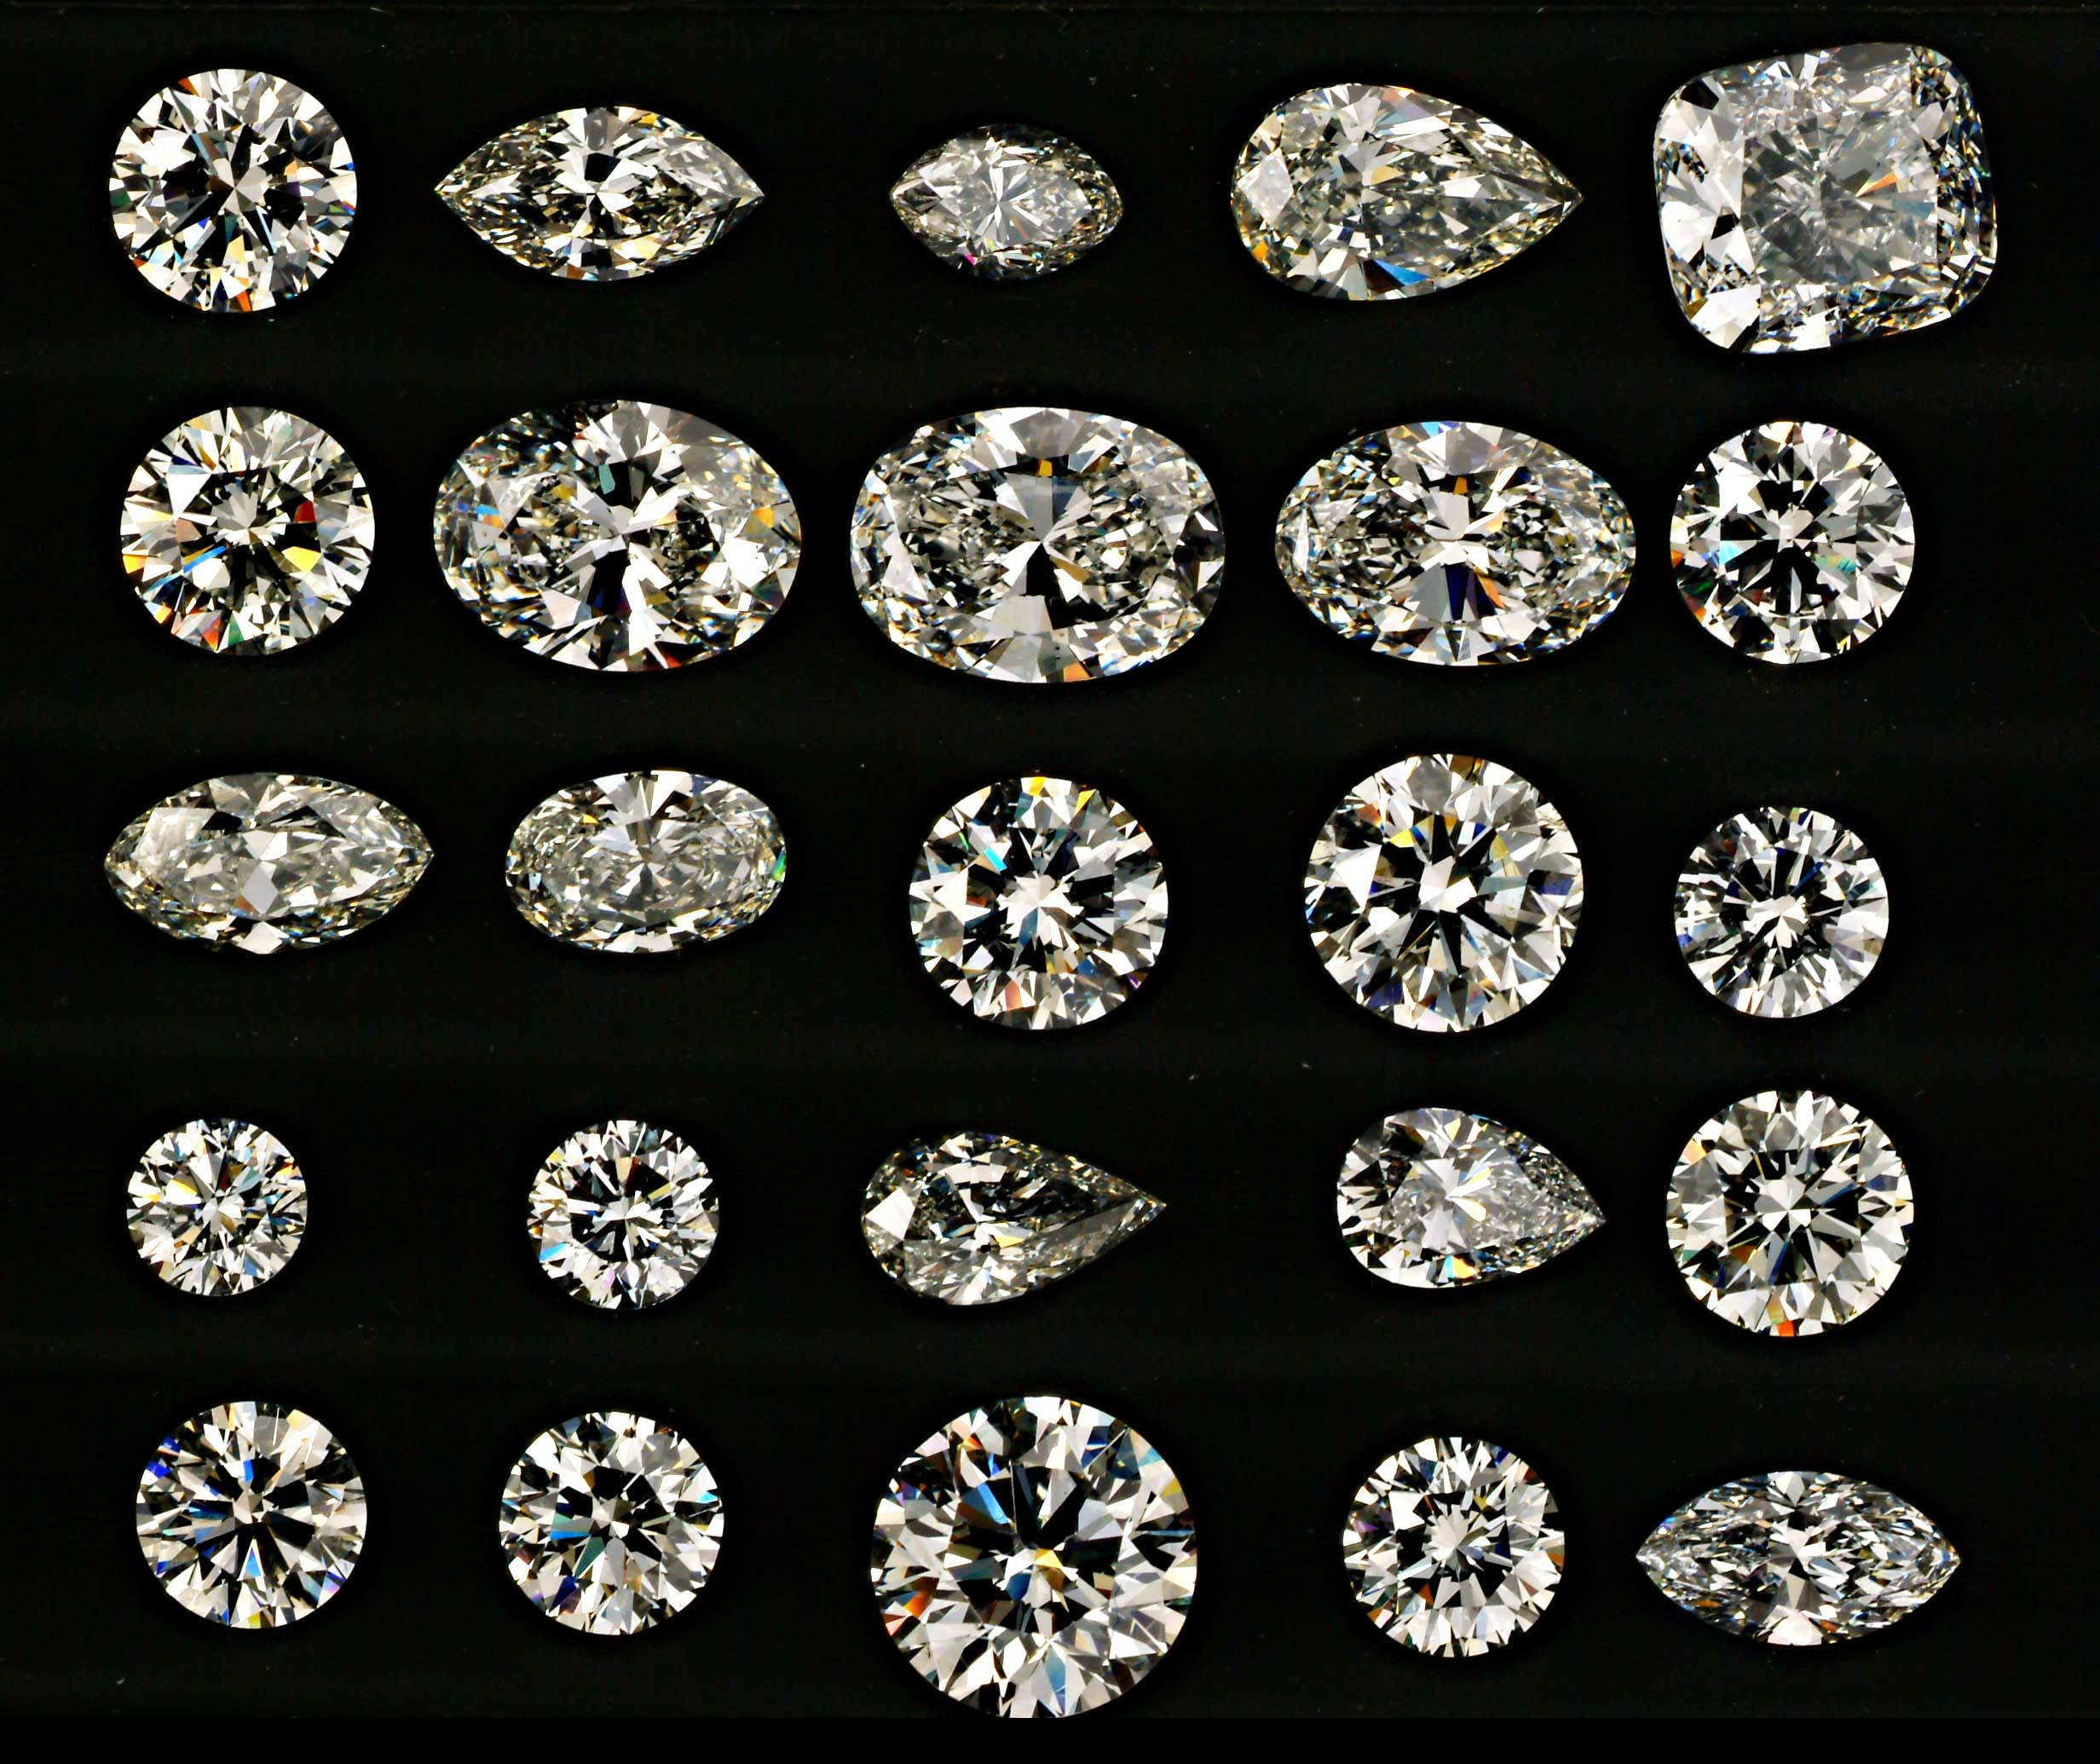 grading know all loop about jewelers get appraising a diamond img scintillation and to through diamonds